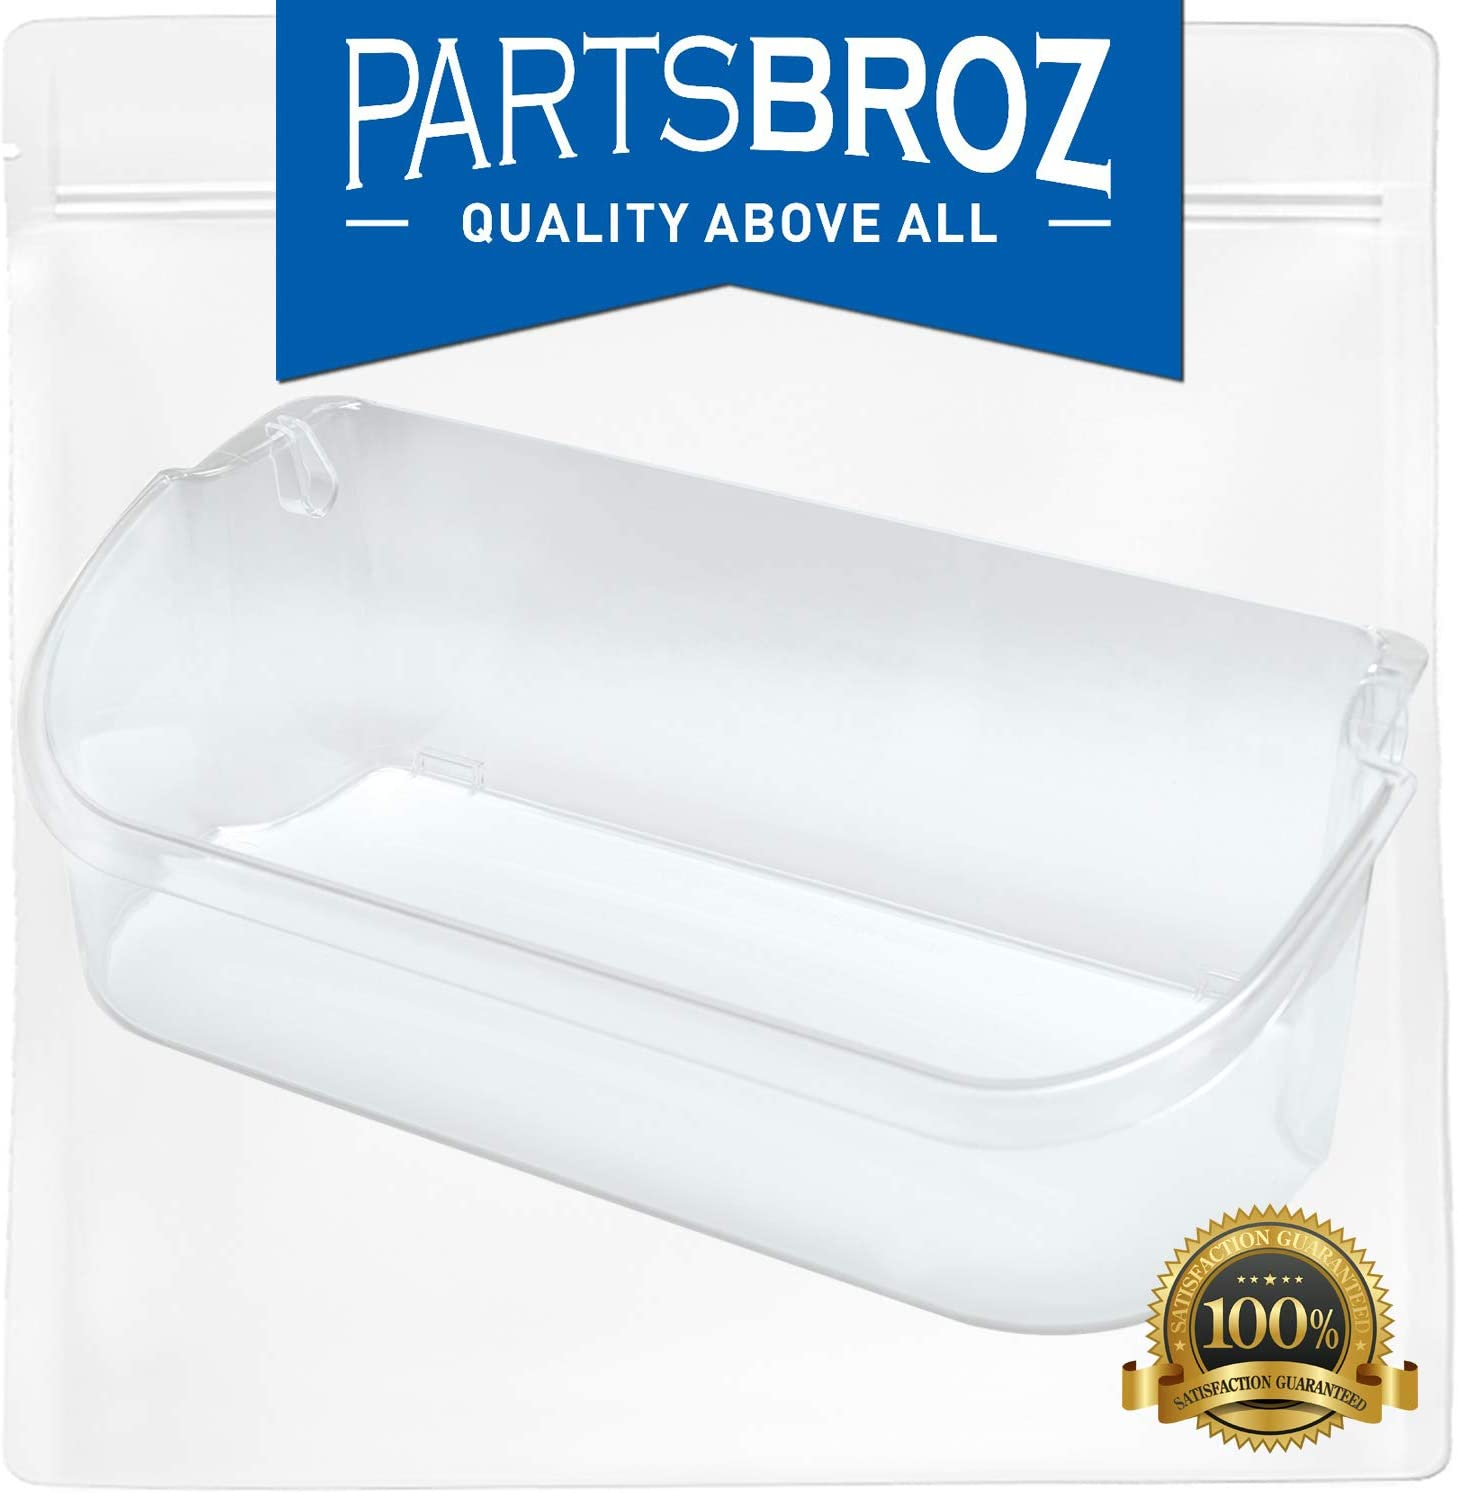 240356402 Clear Refrigerator Bin for Electrolux and Frigidaire, Upper Slot Replacement Shelf, Gallon Size by PartsBroz - Replaces Part Numbers AP2549958, 240430312, 240356416, 240356407, and more 612BKC64HOkL